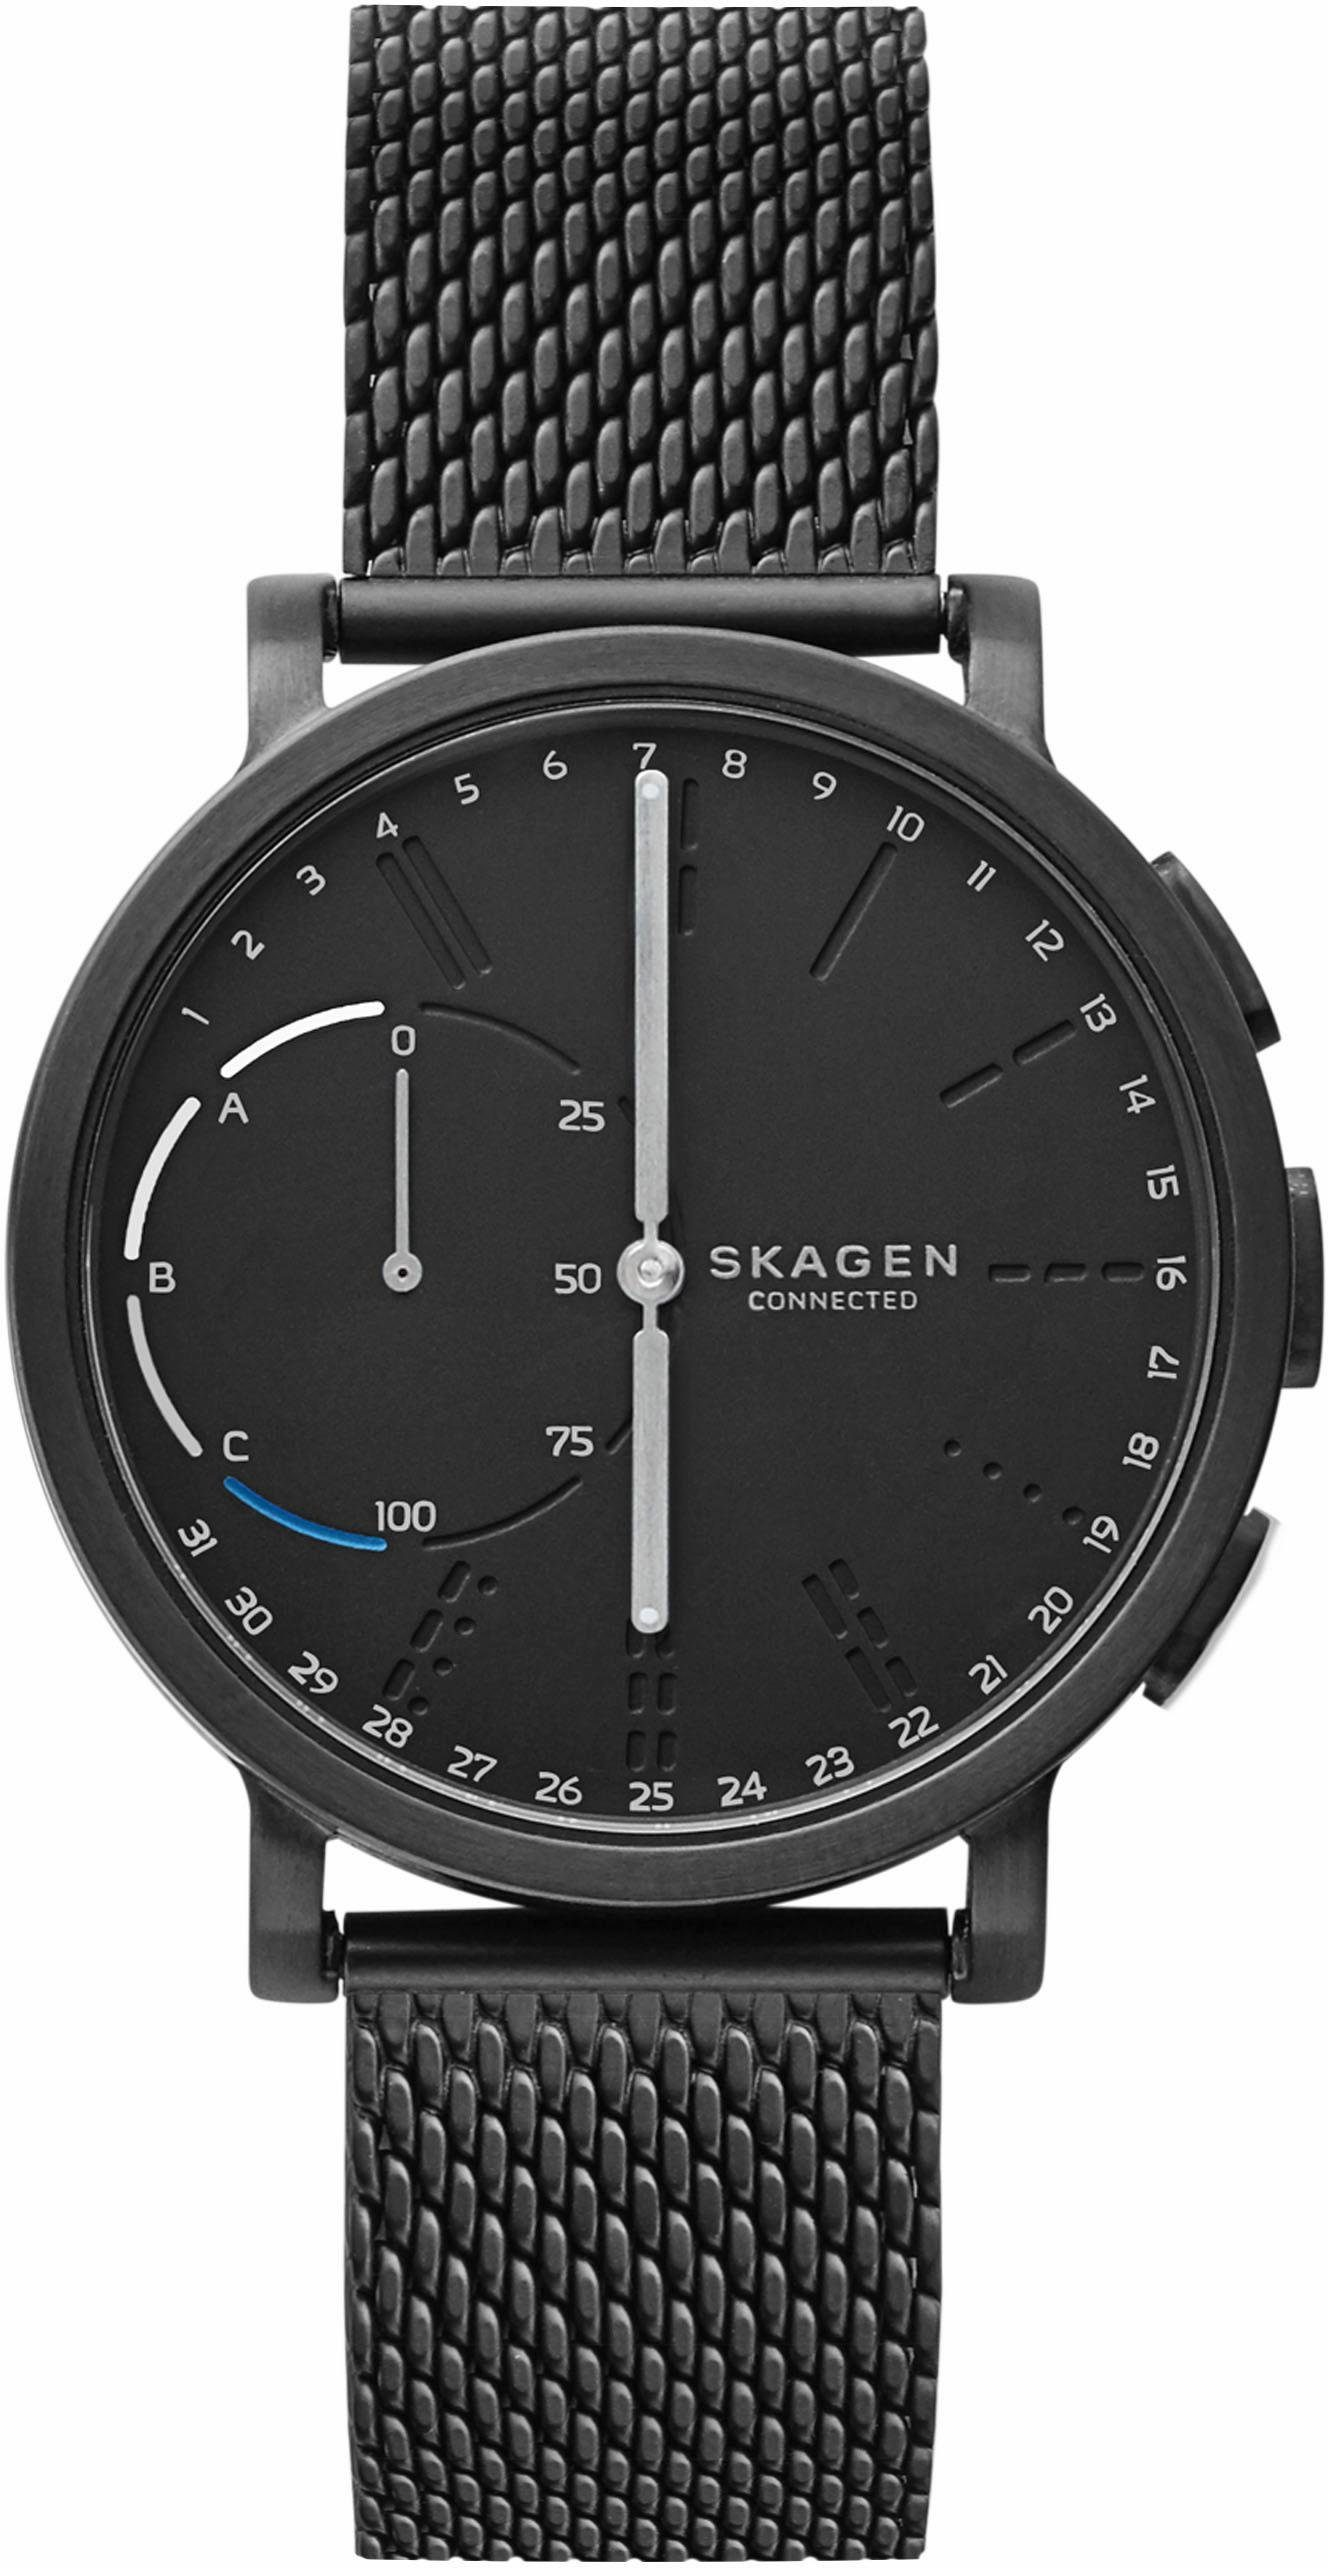 SKAGEN CONNECTED HAGEN CONNECTED, SKT1109 Smartwatch